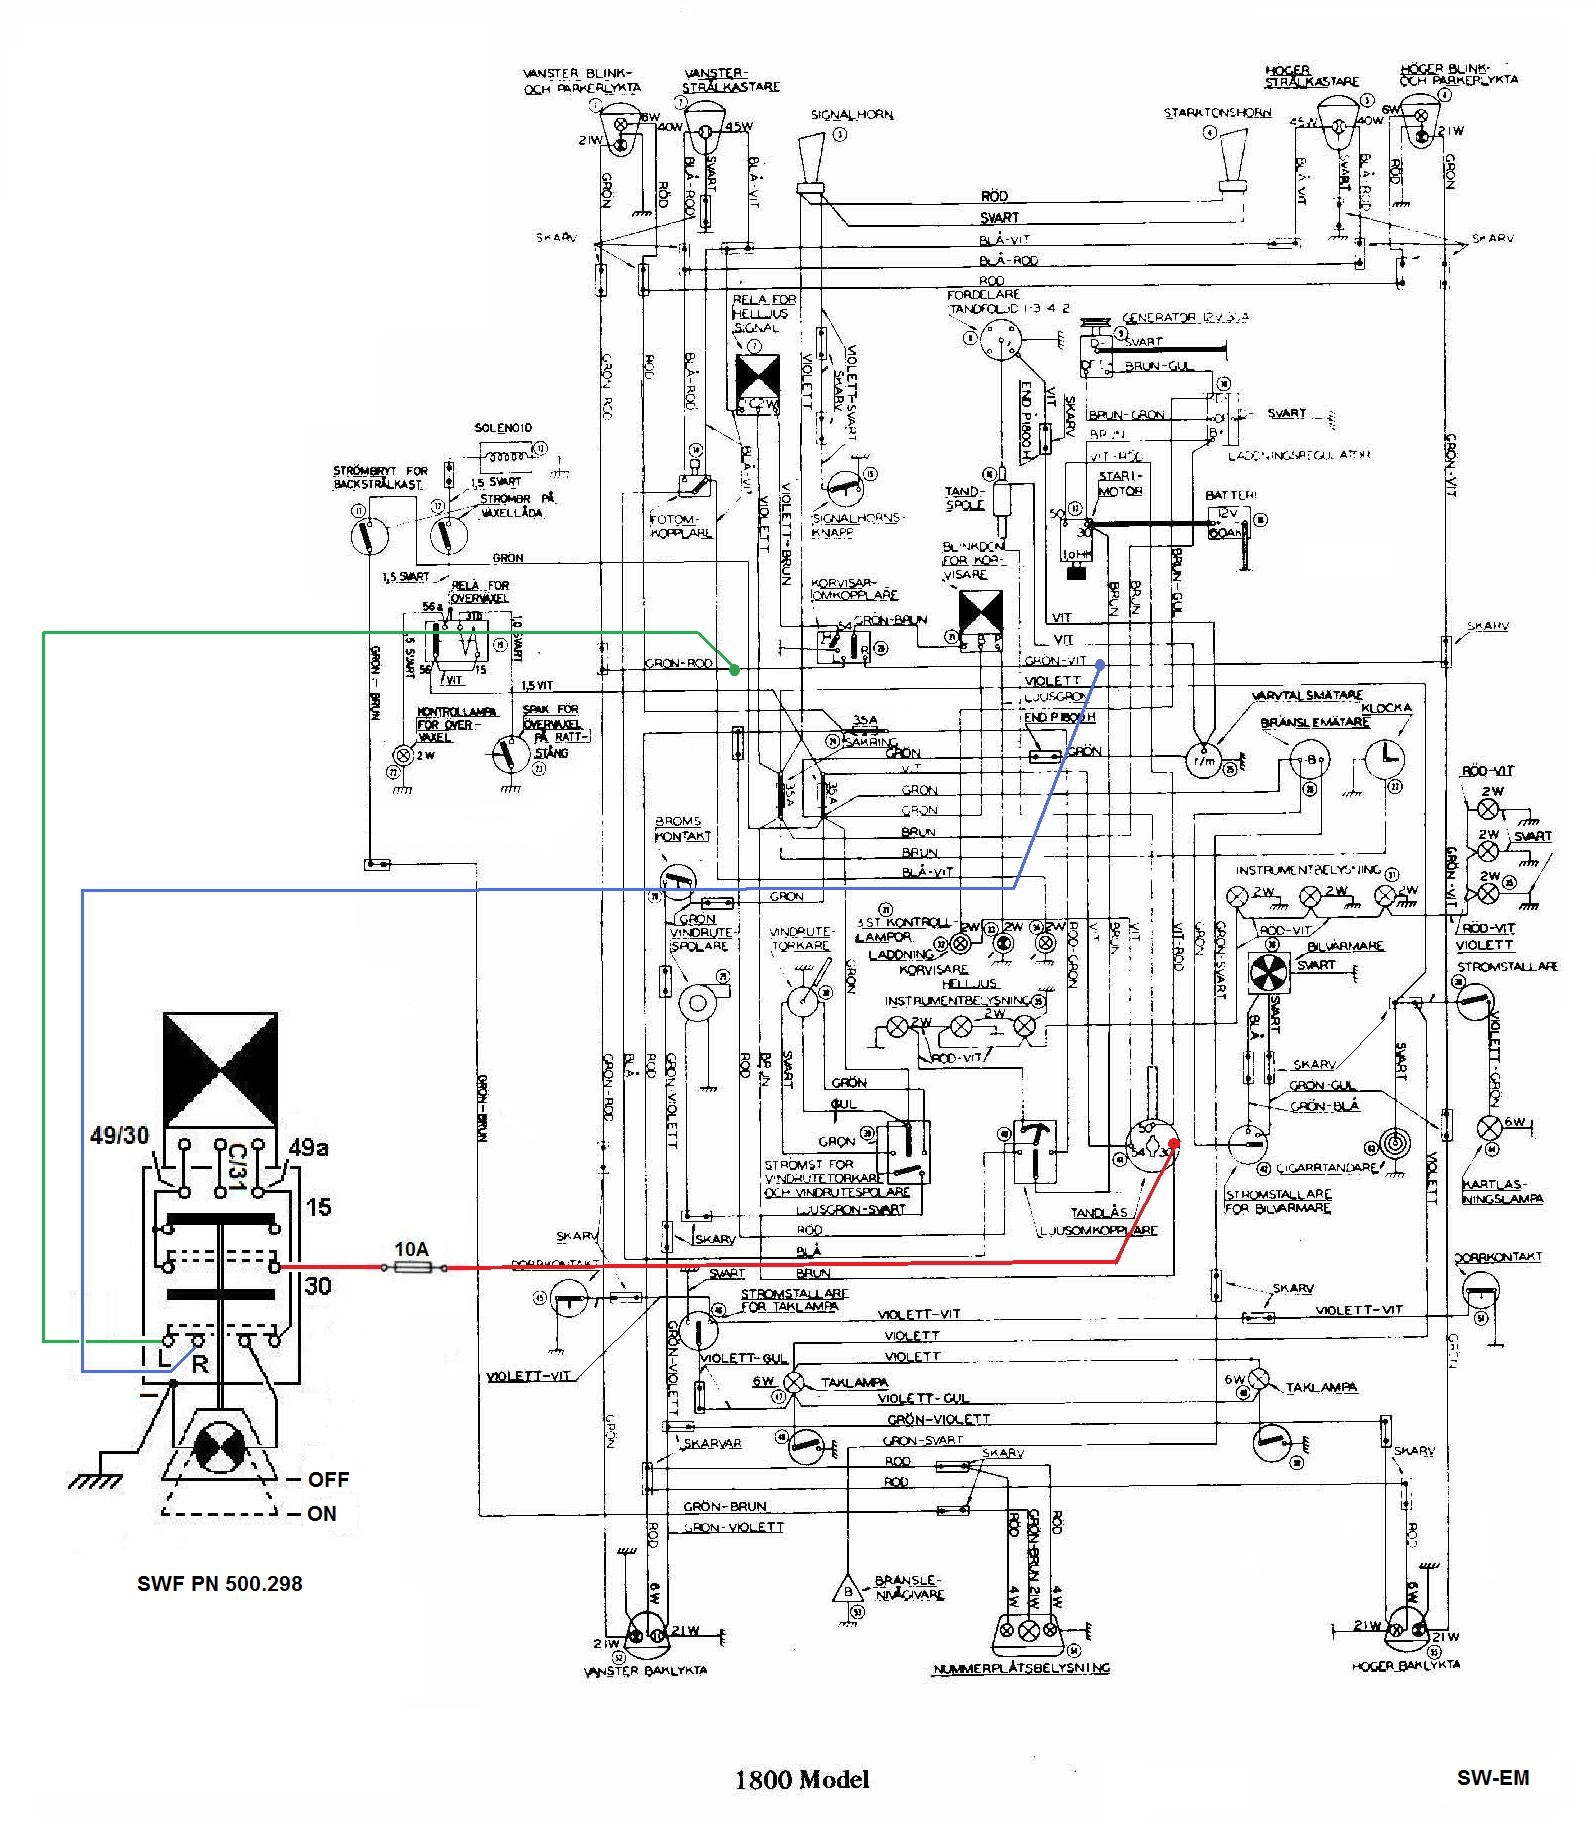 1800_Wiring_Diagram_SWF_E flasher_Switch sw em emergency flasher flasher wiring diagram at crackthecode.co